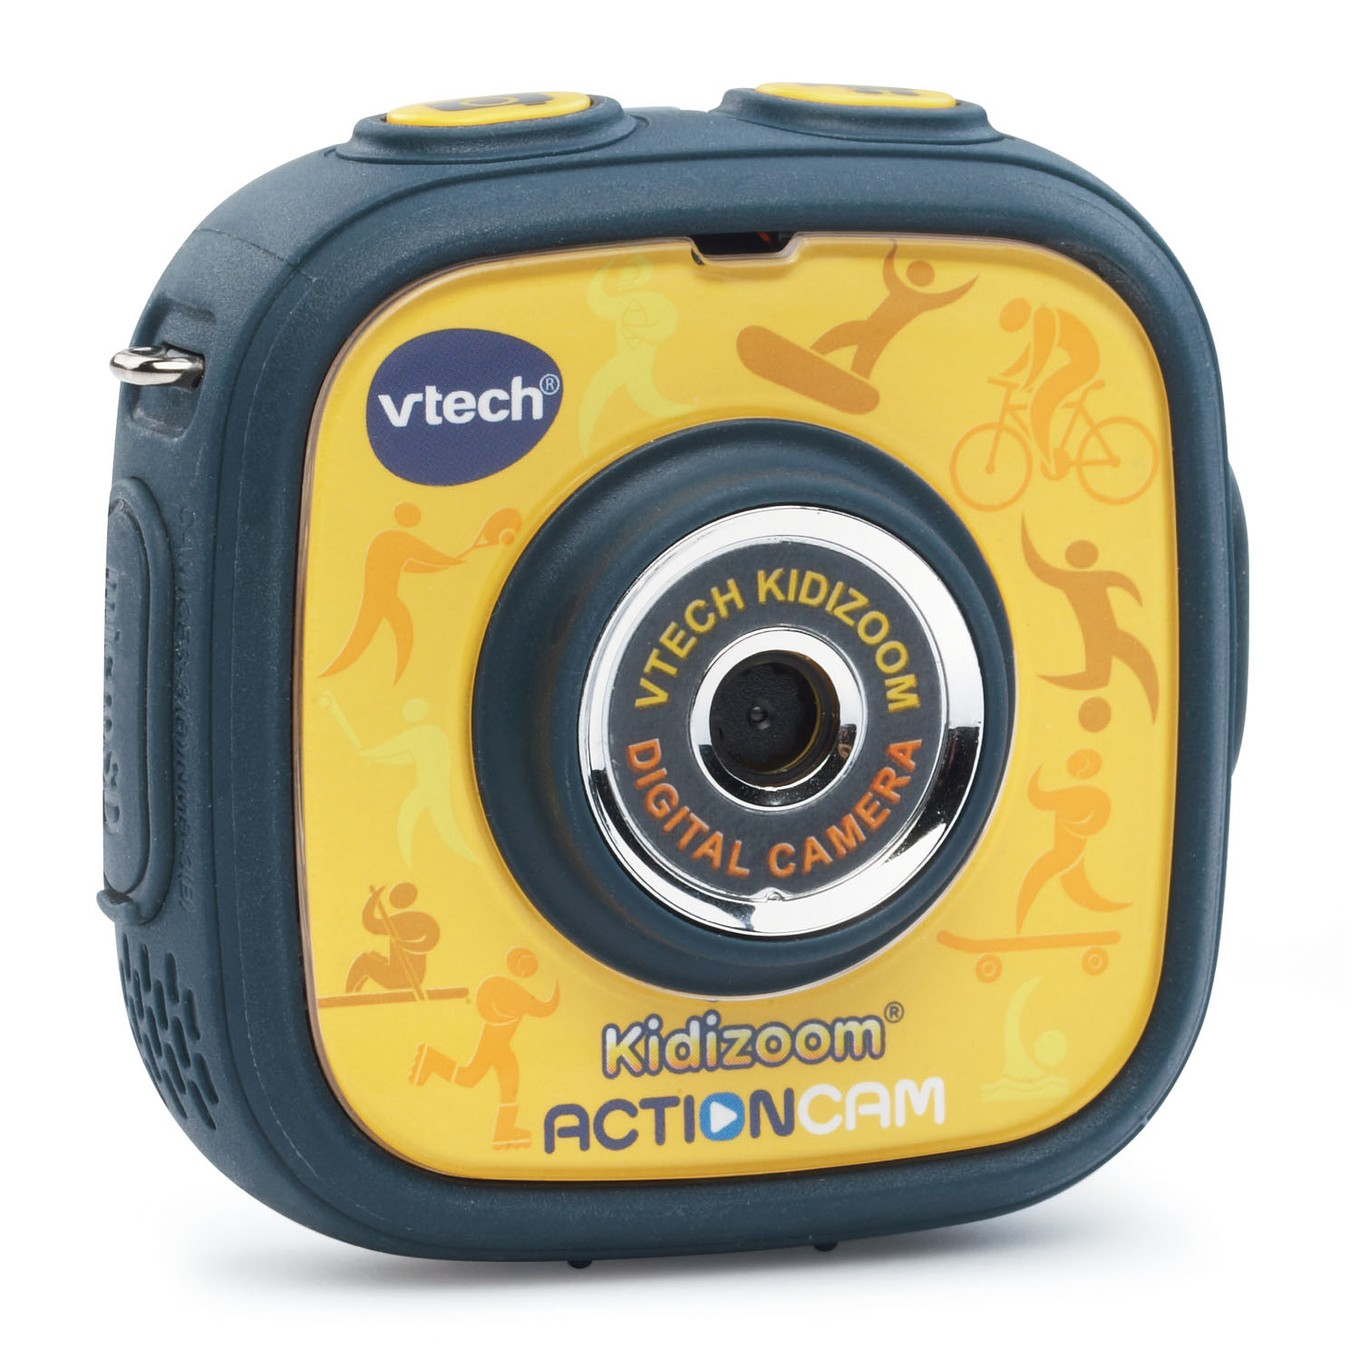 Camera Vtech Kids Camera vtech canada official electronic learning toys games for kids kidizoom action cam yellowblack